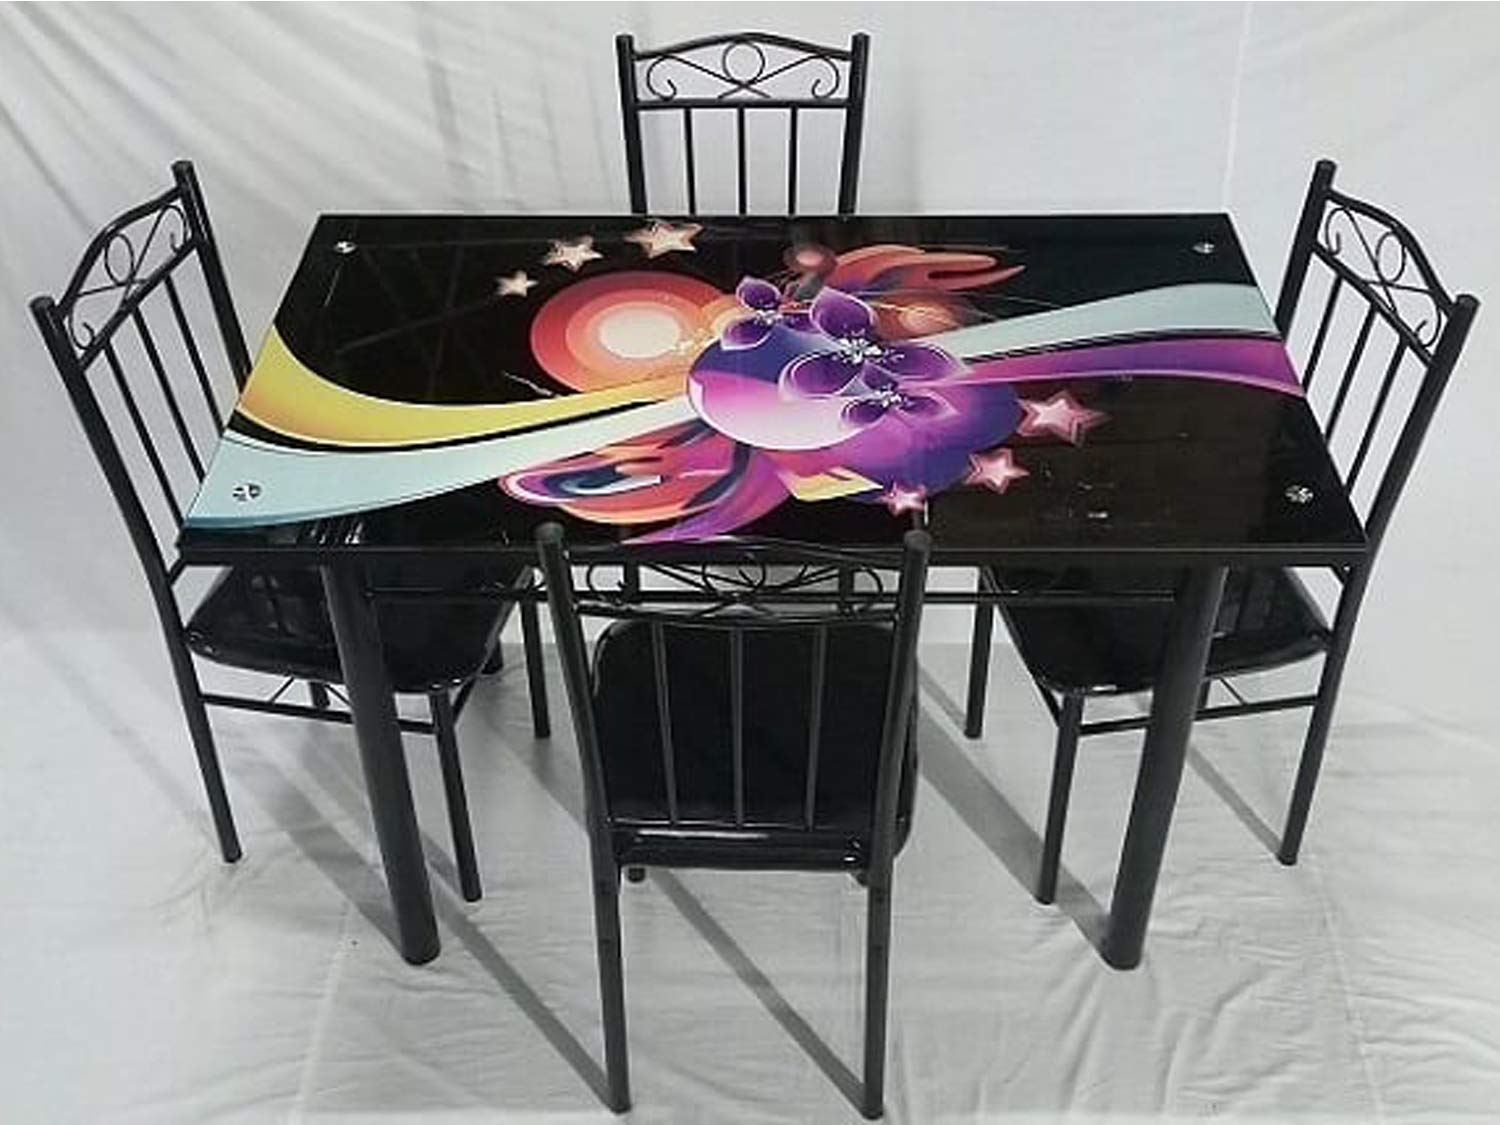 T2a Furniture 4 Seater Glass Top Metal Base Dining Table Set Black Amazon In Home Kitchen